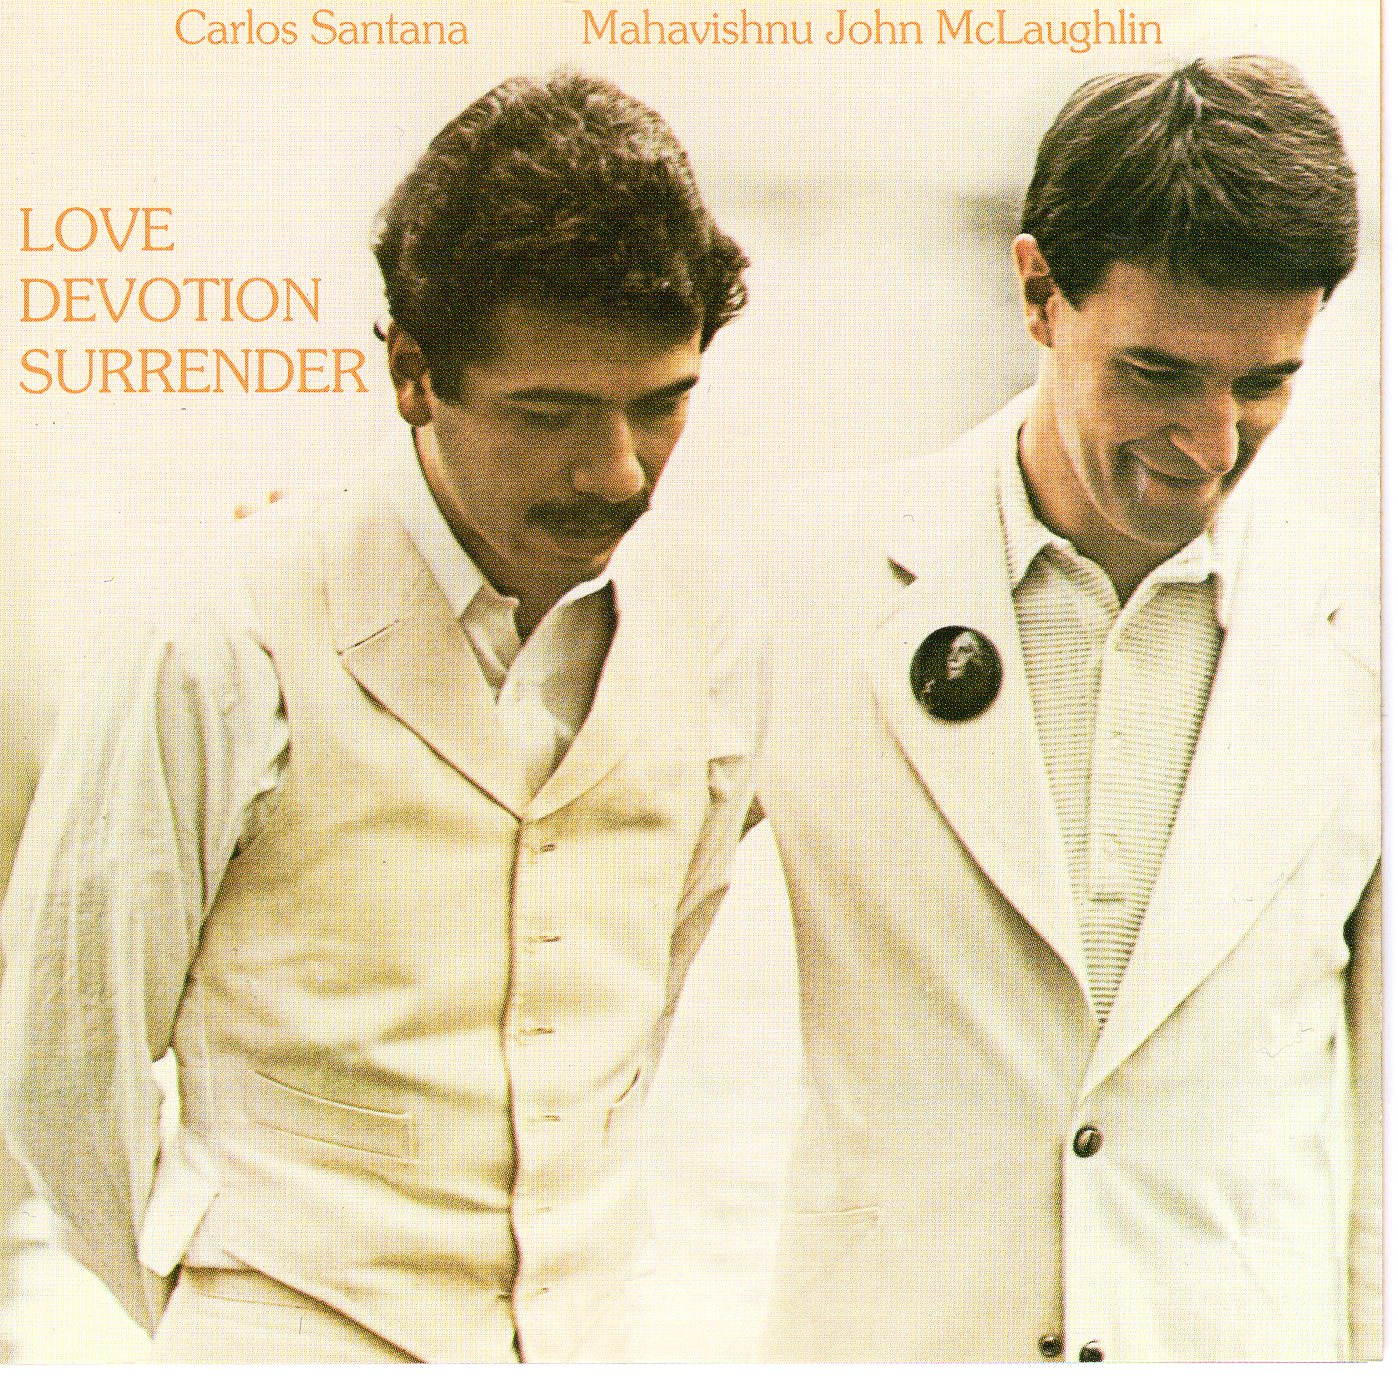 """Love Devotion Surrender"" Carlos Santana & Mahavishnu John Mclaughlin"